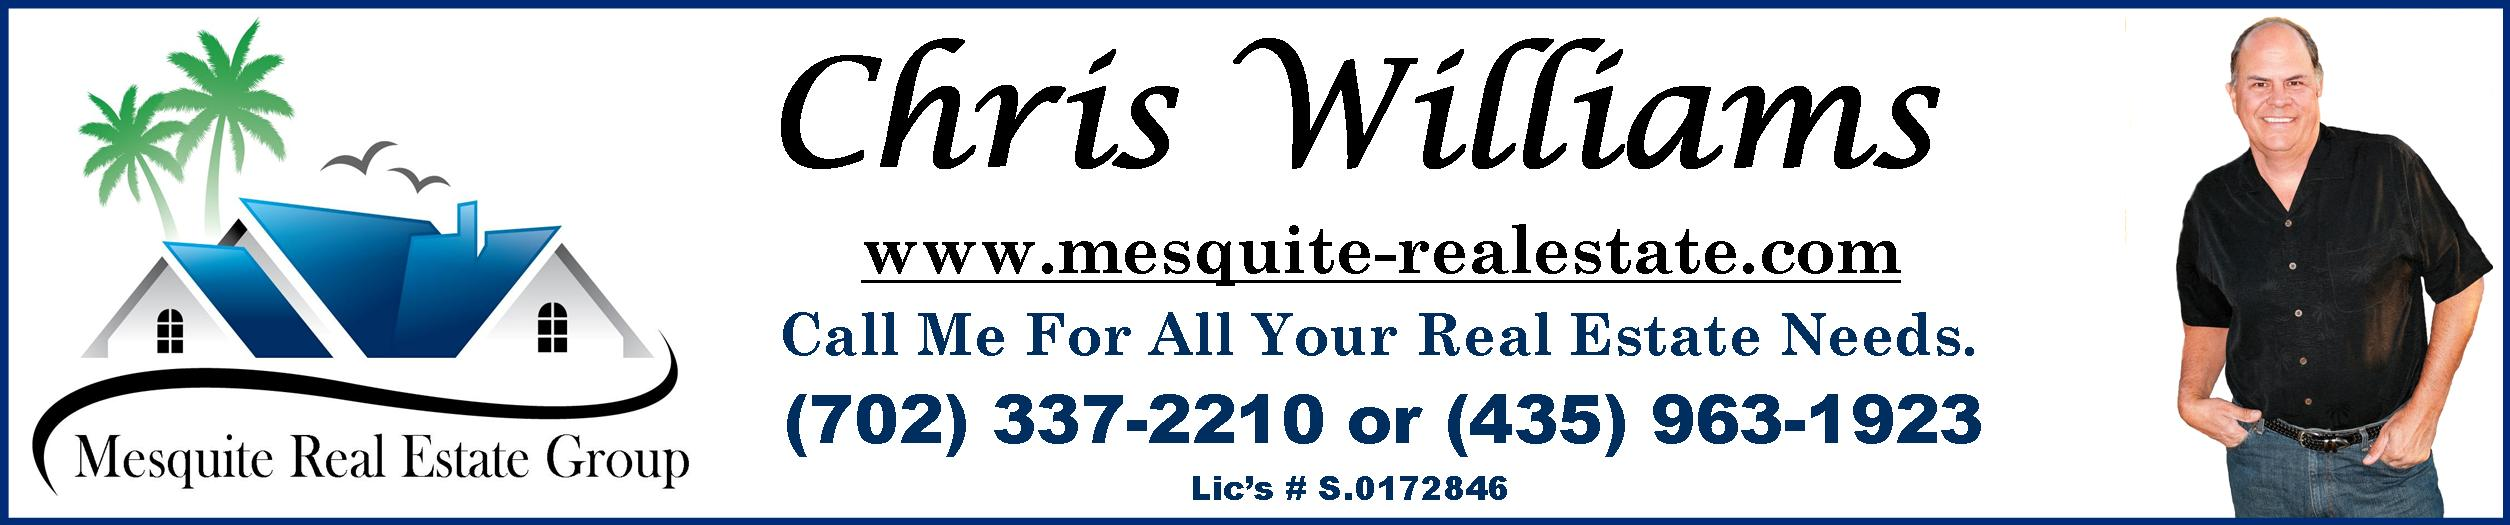 Mesquite Real Estate Group